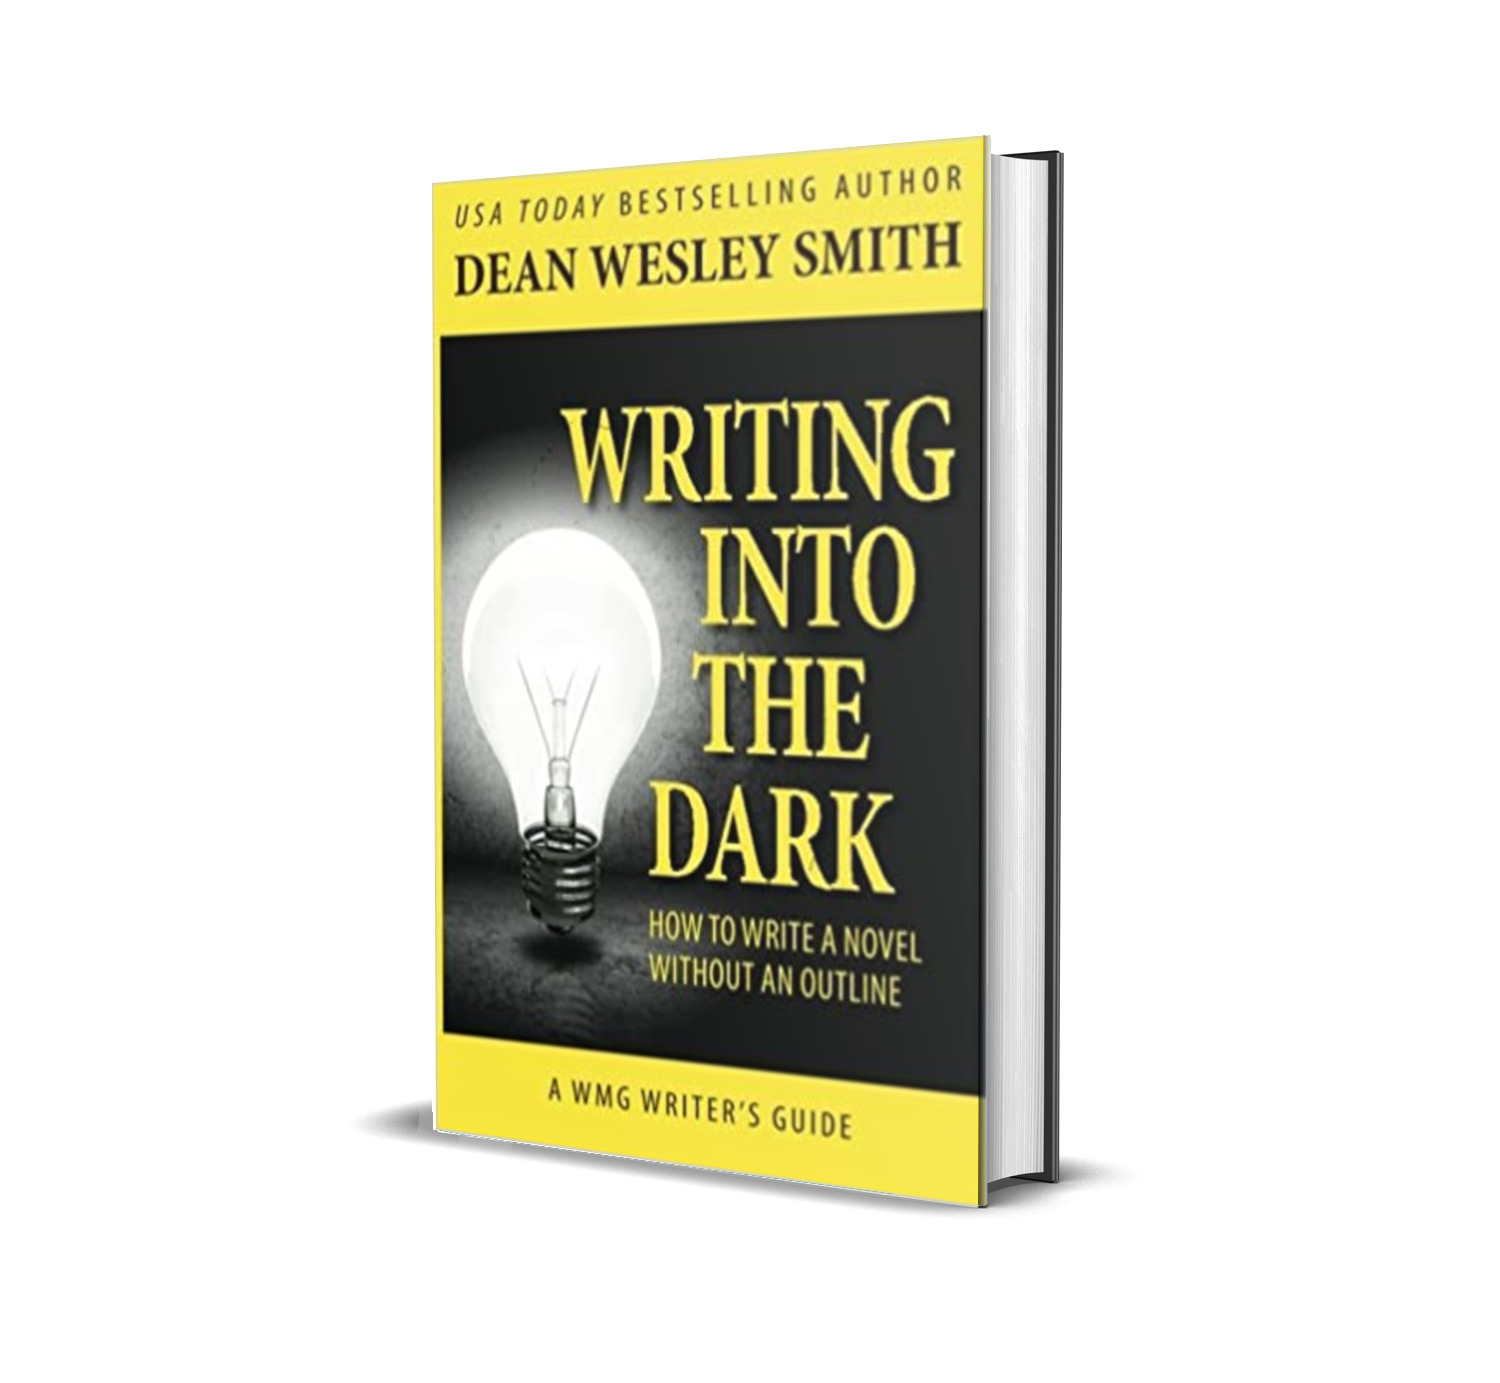 Writing into the Dark - Dean Wesley Smith